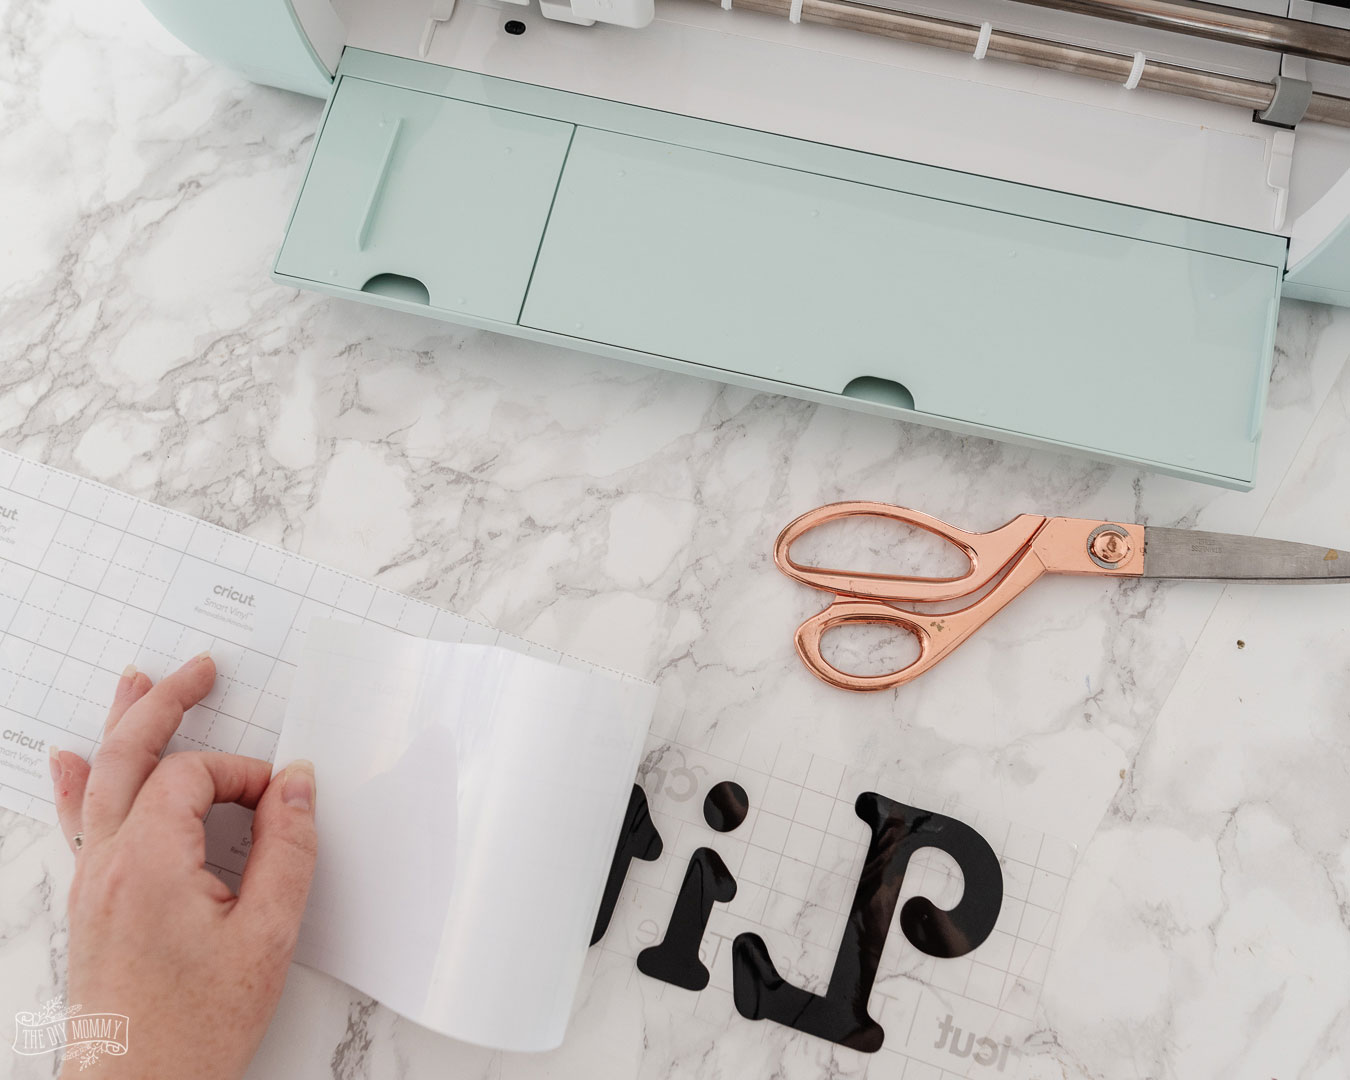 Get everything you need to know about the new smart cutting machine in this Cricut Explore 3 Review